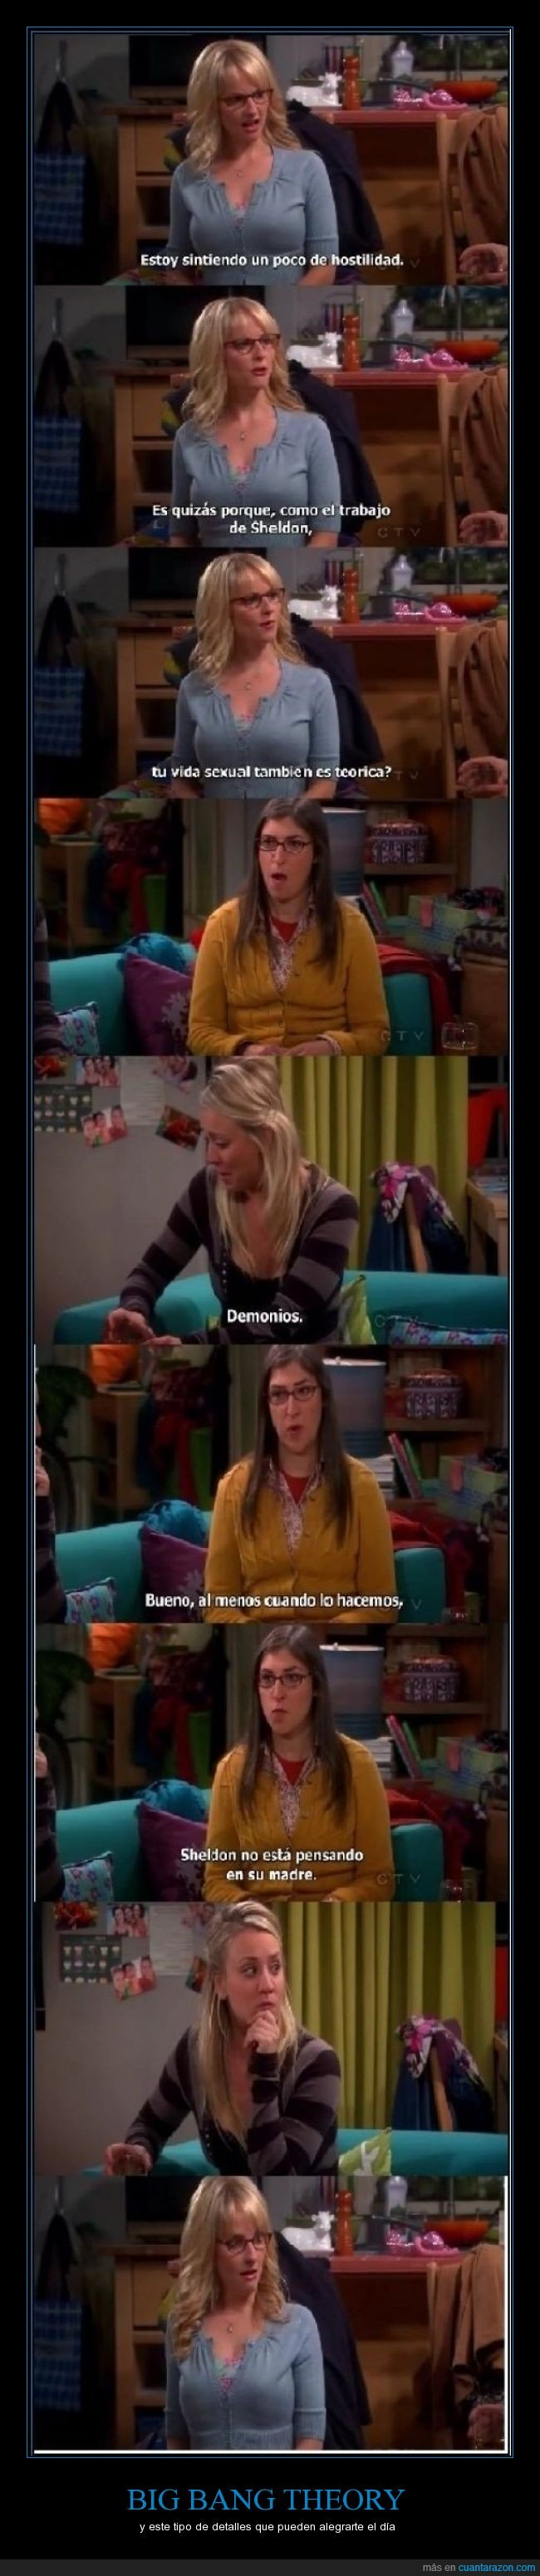 amy farrah fowler,bernadette,howard wolowitz,madre,pensar,sheldon,teorico,theoretical